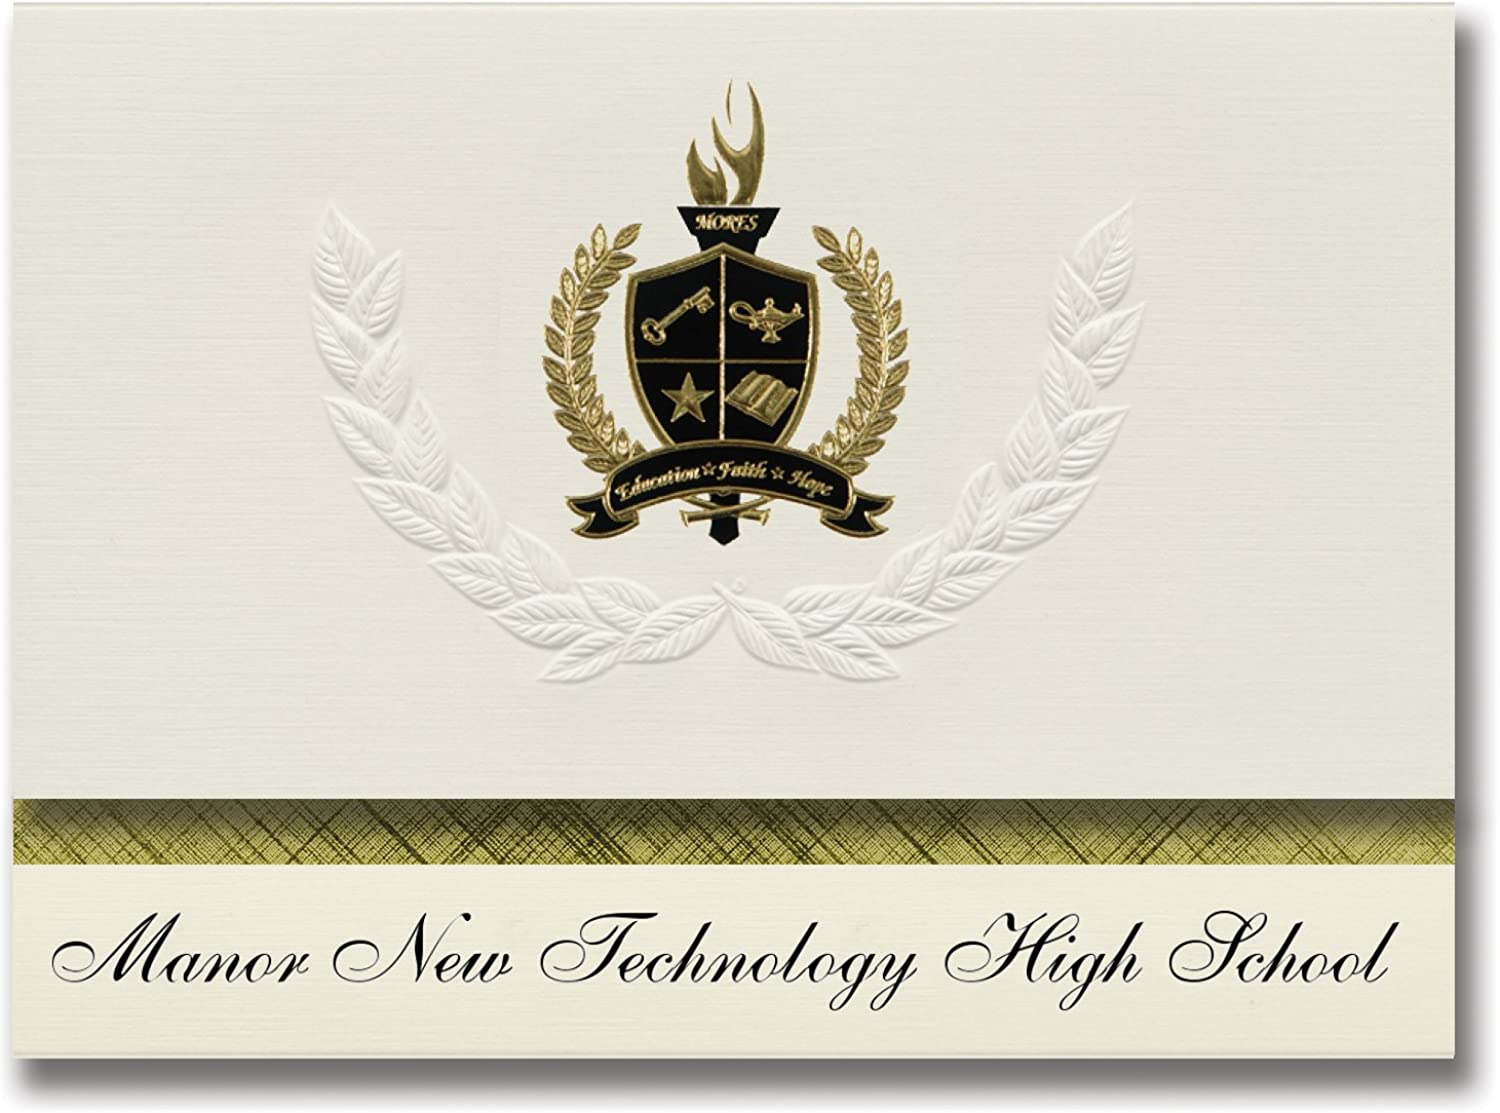 Signature Ankündigungen Manor Neue Technologie High School (Manor, TX) Graduation Ankündigungen, Presidential Stil, Elite Paket 25 Stück mit Gold & Schwarz Metallic Folie Dichtung B078VDQ6T3   | Haltbar